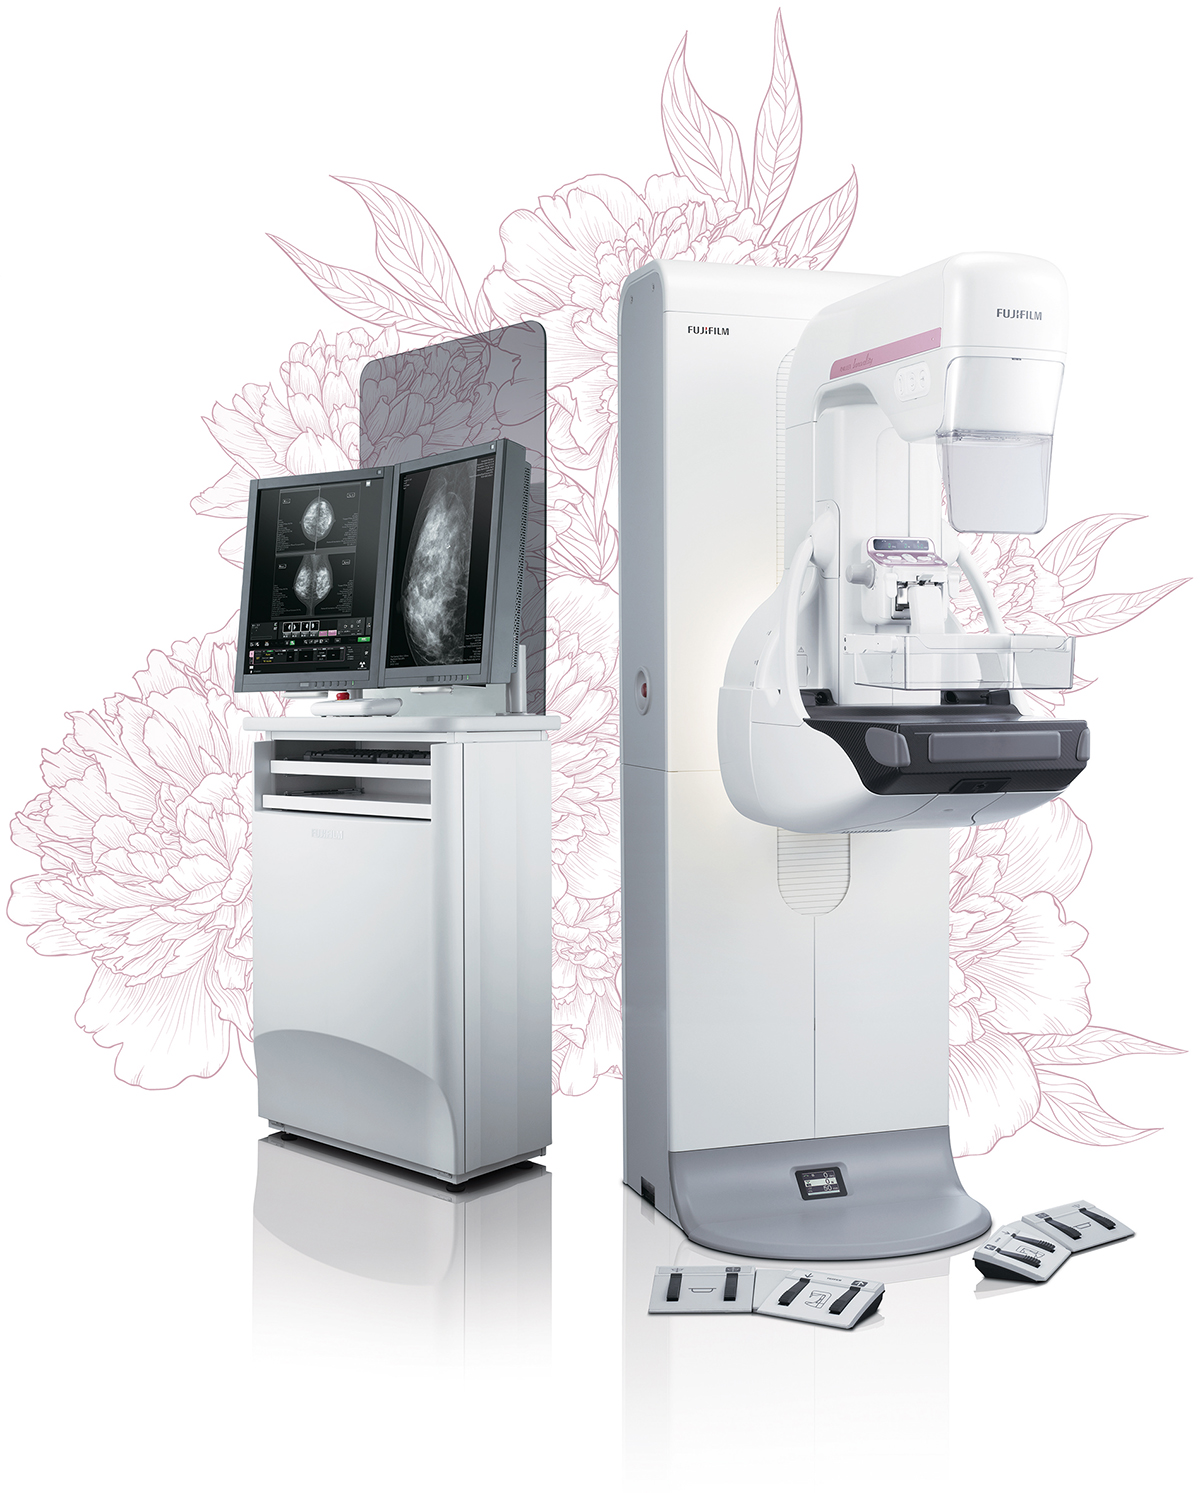 [photo] AMULET Innovality digital mammography system and workstation